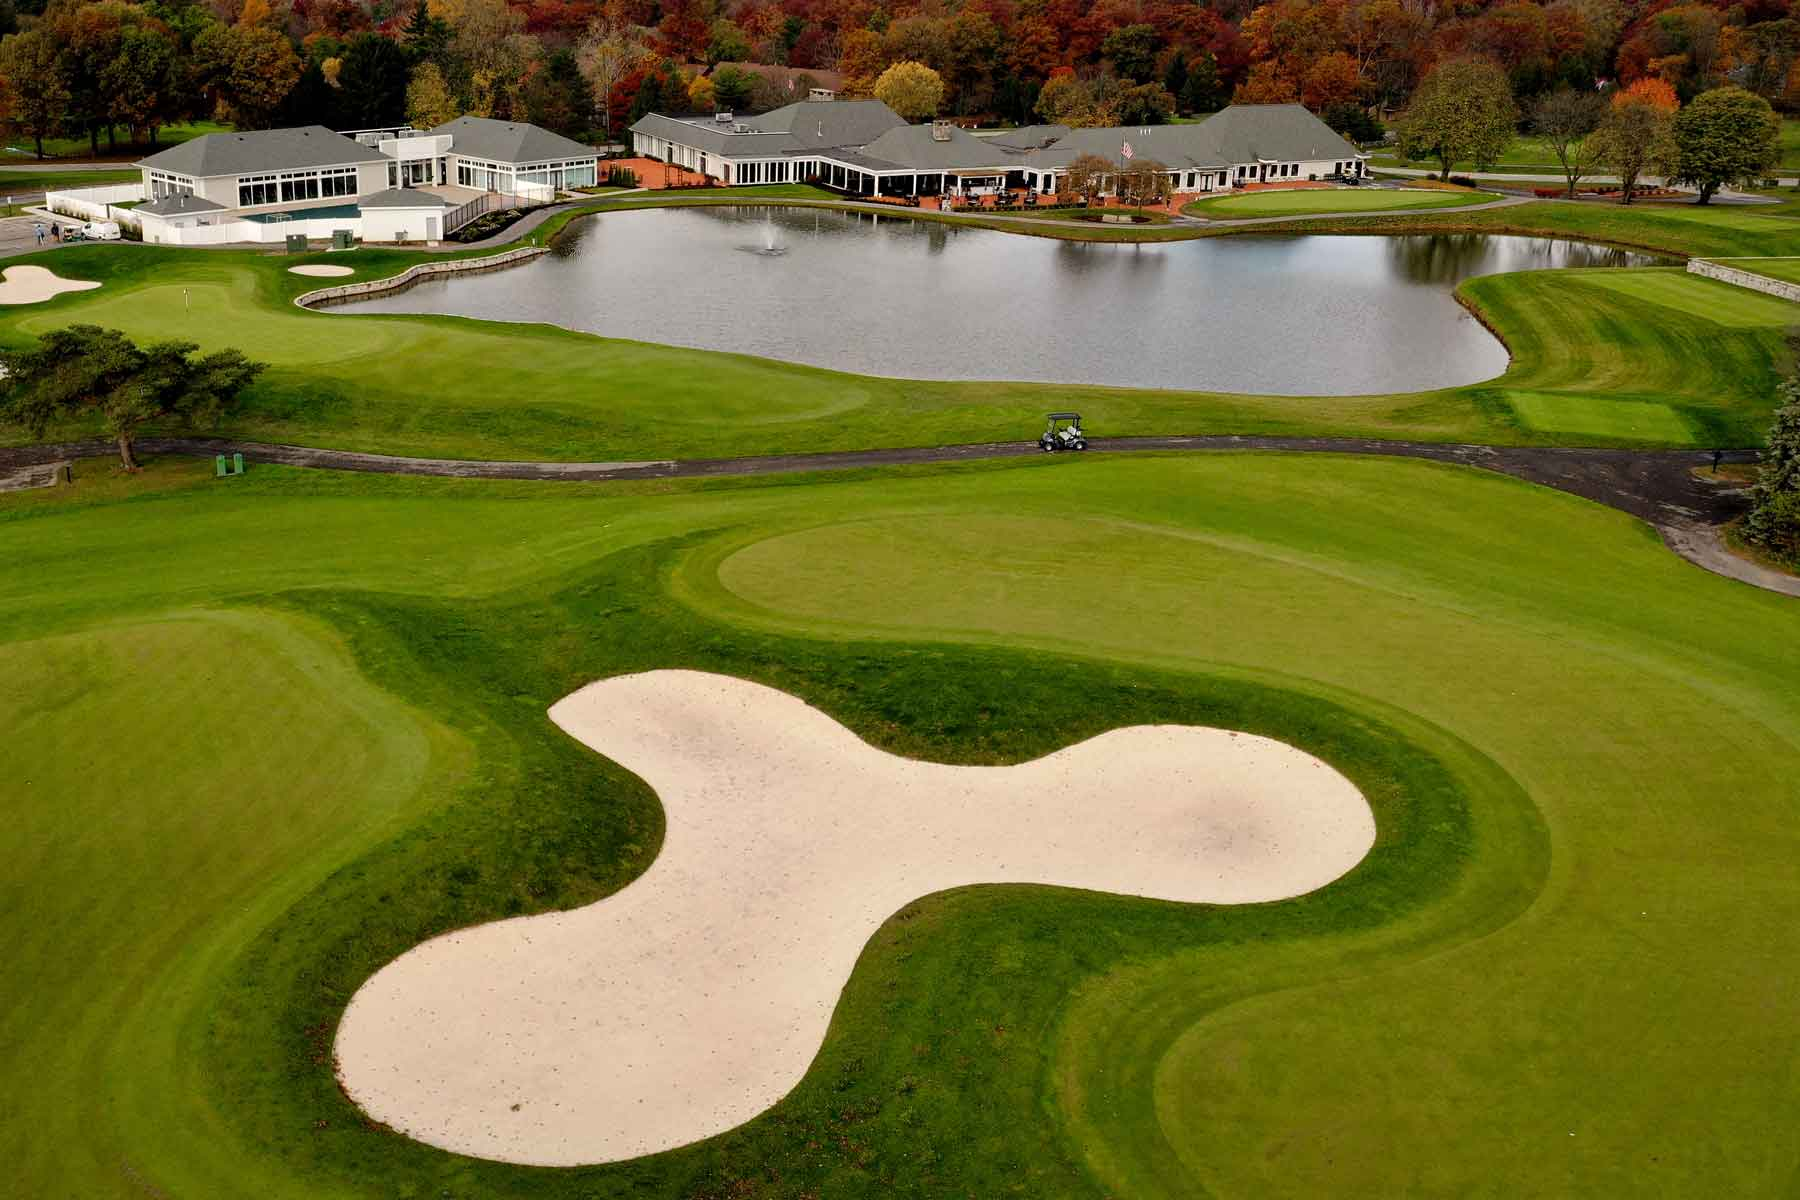 aerial view of the course